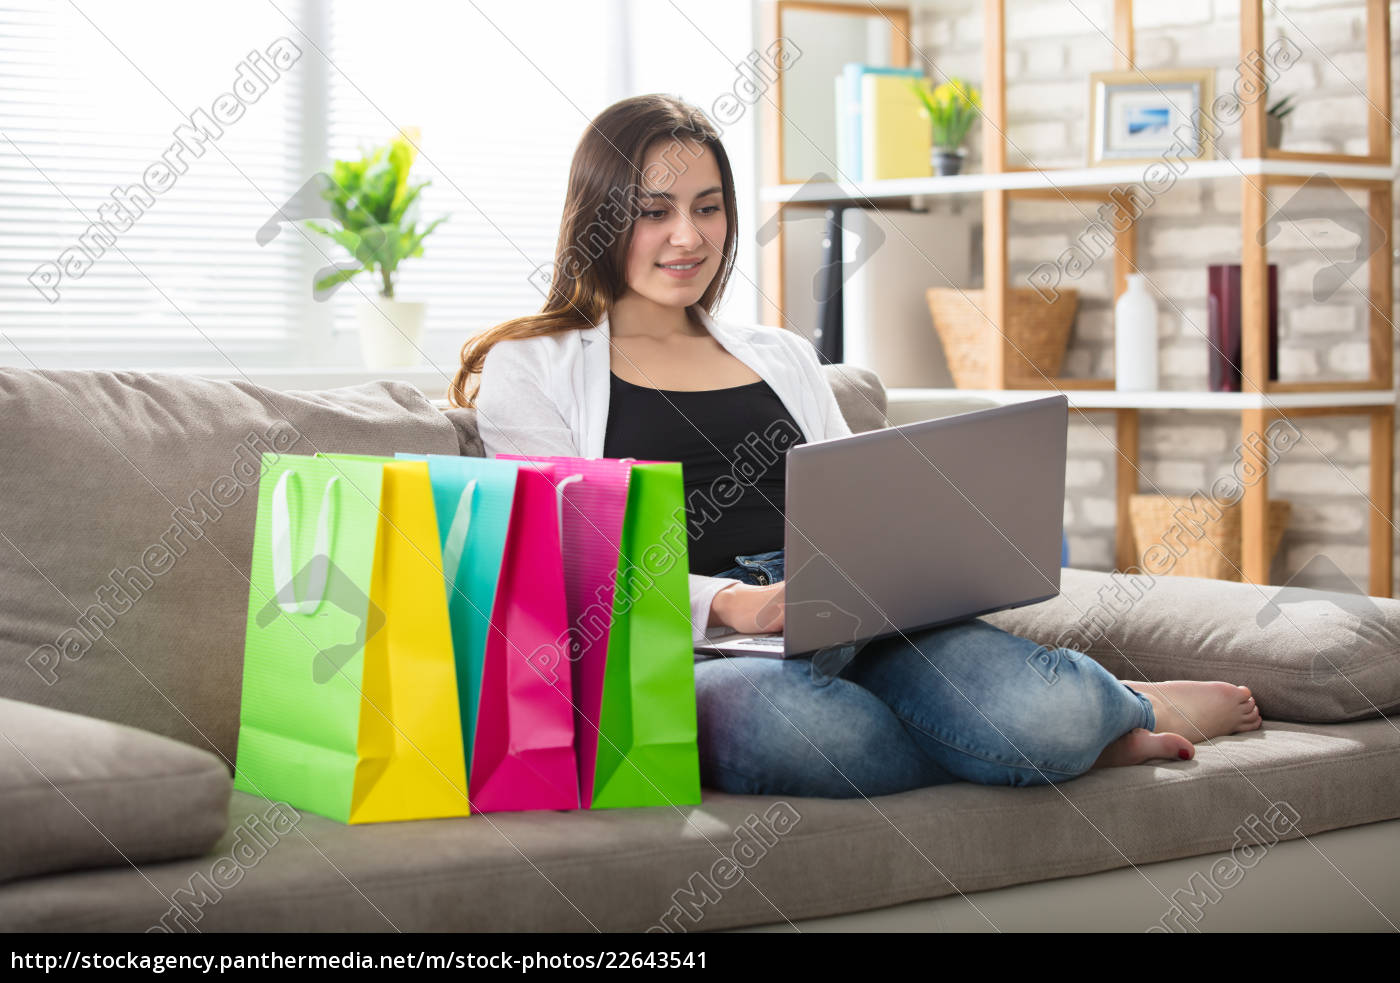 woman, using, laptop, with, colorful, shopping - 22643541